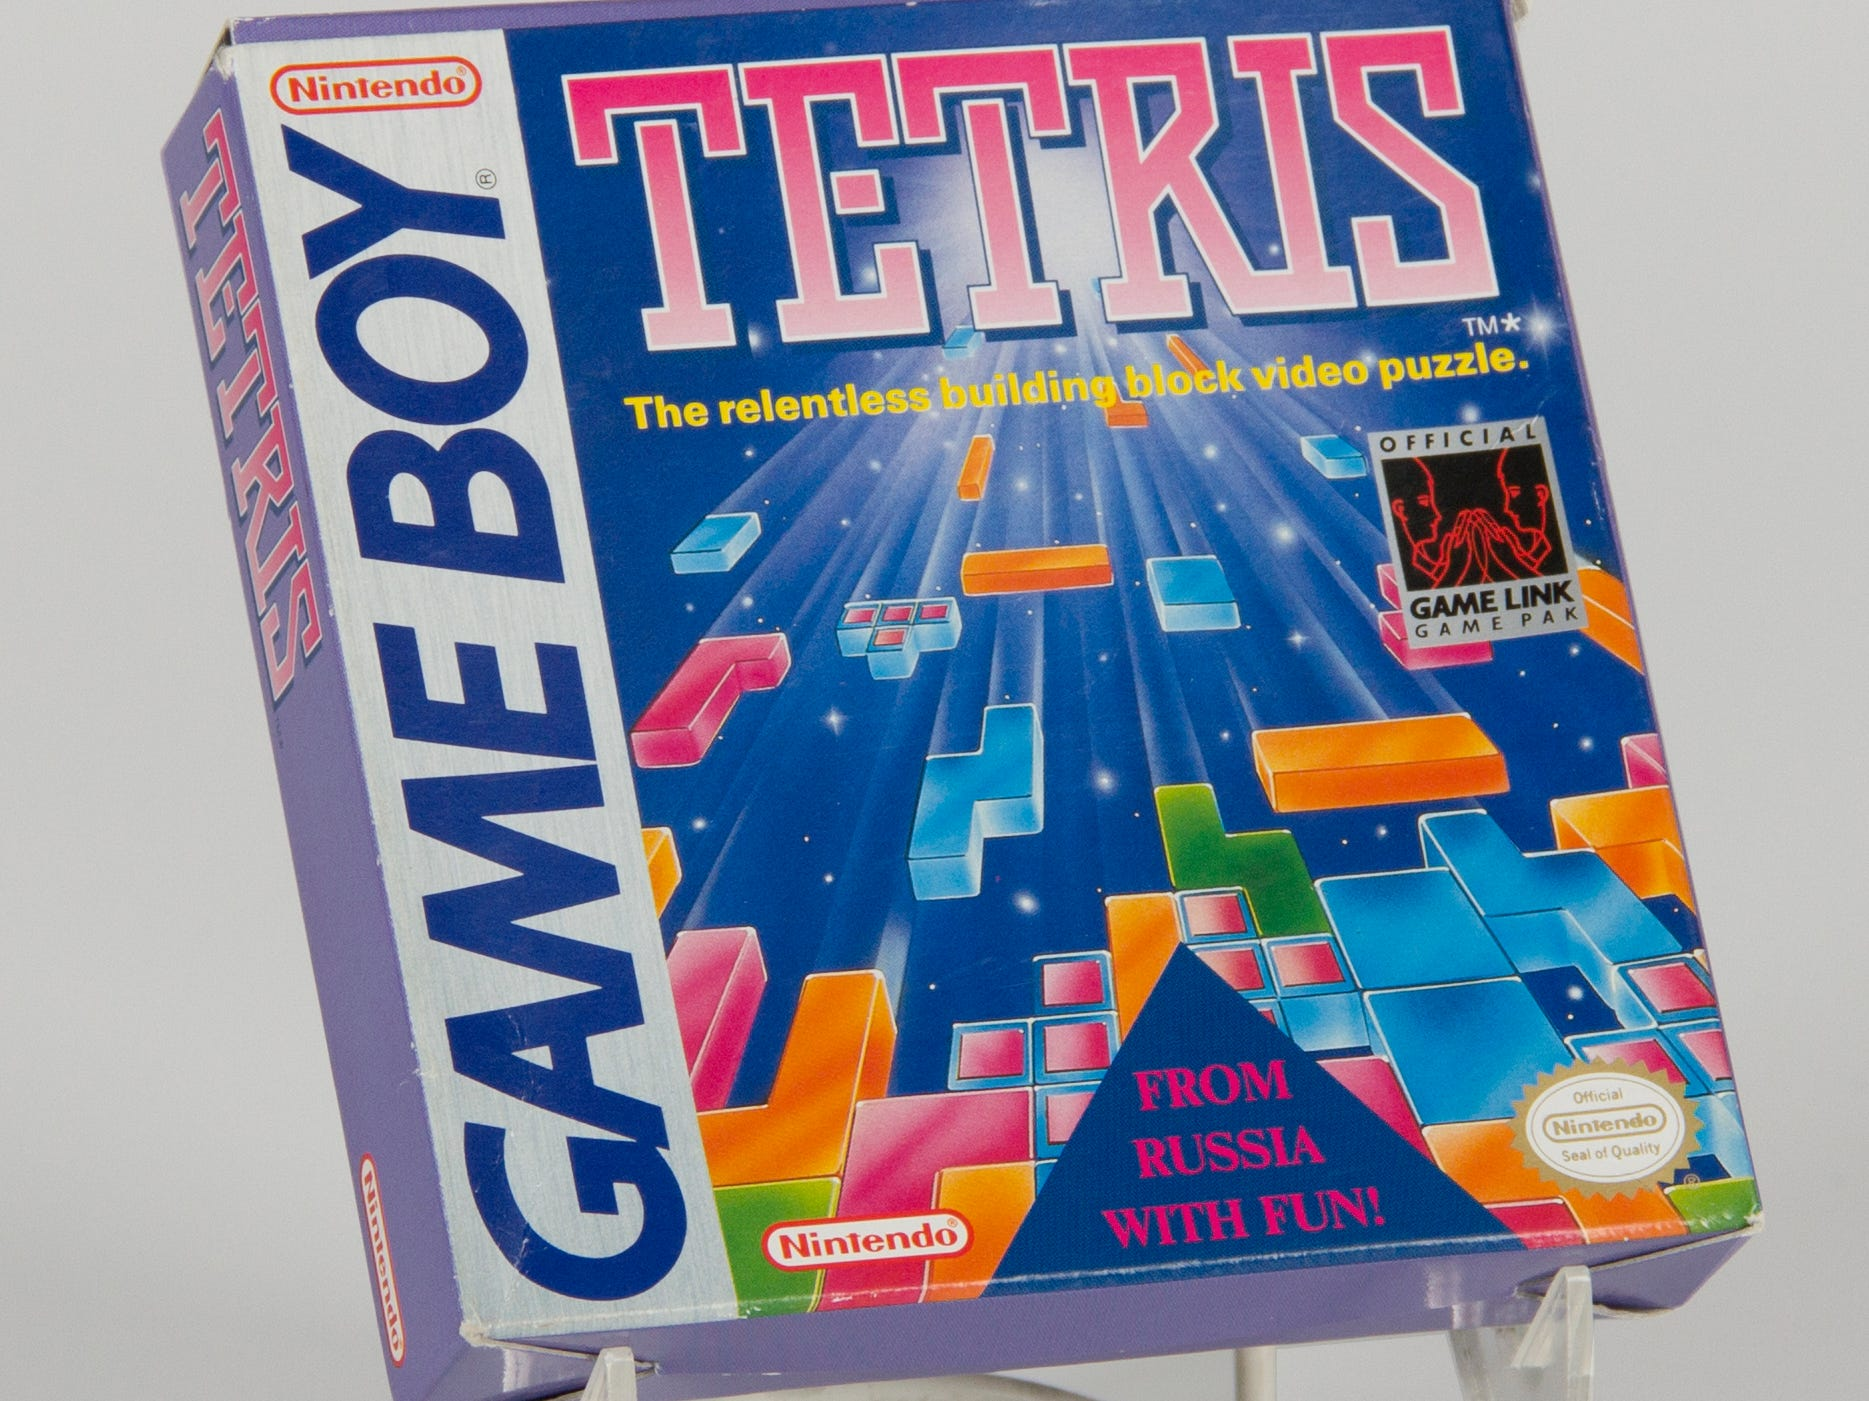 Tetris was inducted into the World Video Game Hall of Fame at The Strong National Museum of Play in  Rochester, New York in 2015.